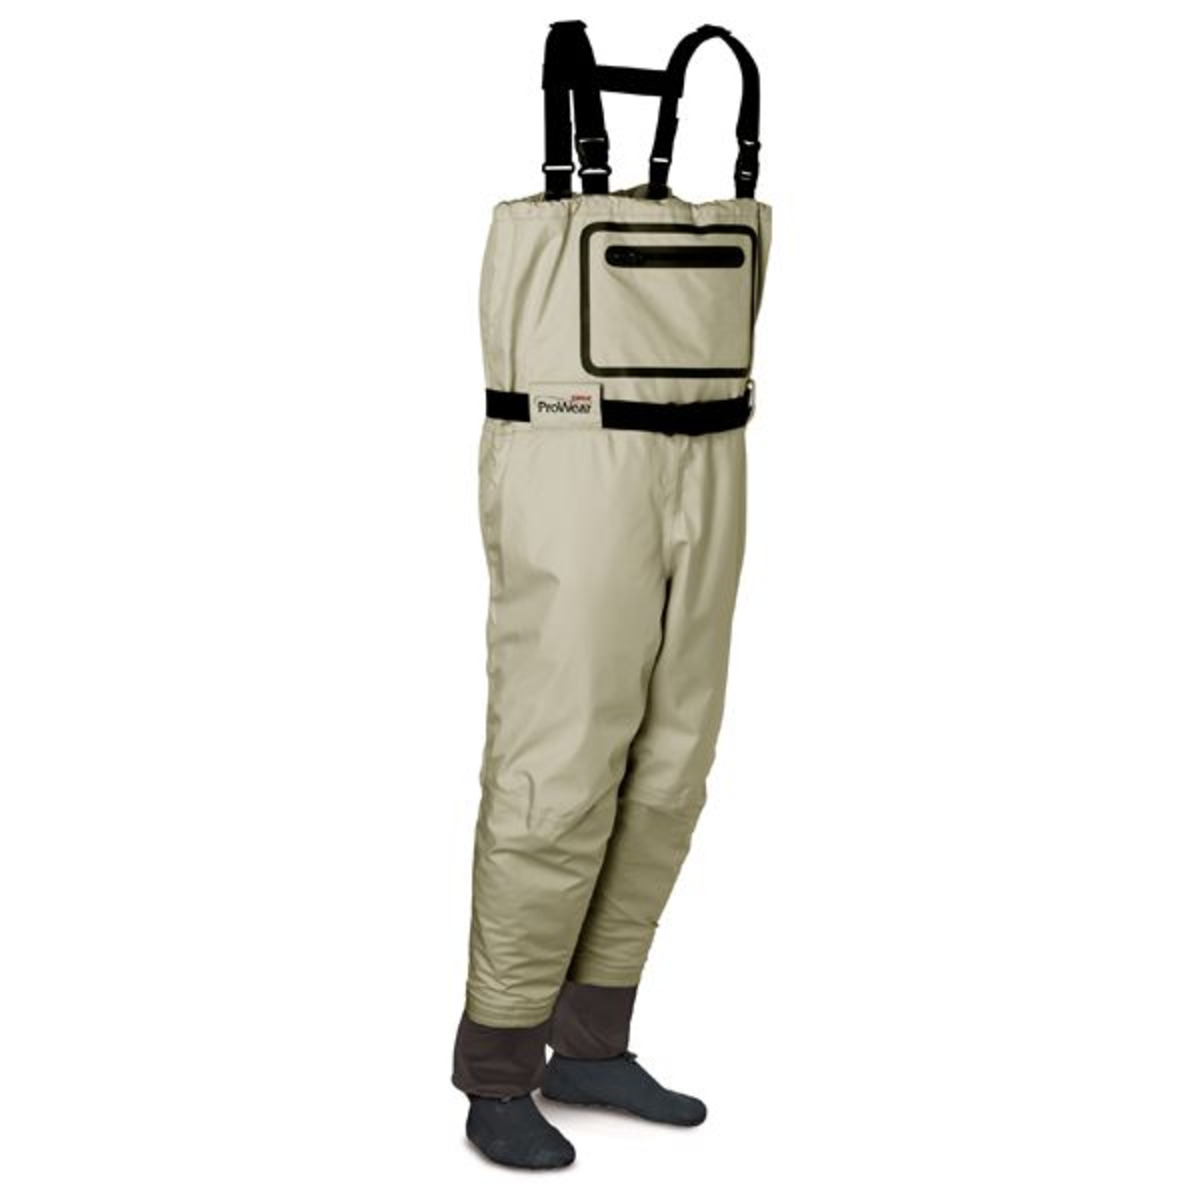 Rapala X-Protect Chest Waders - S - Soil-Charcoal